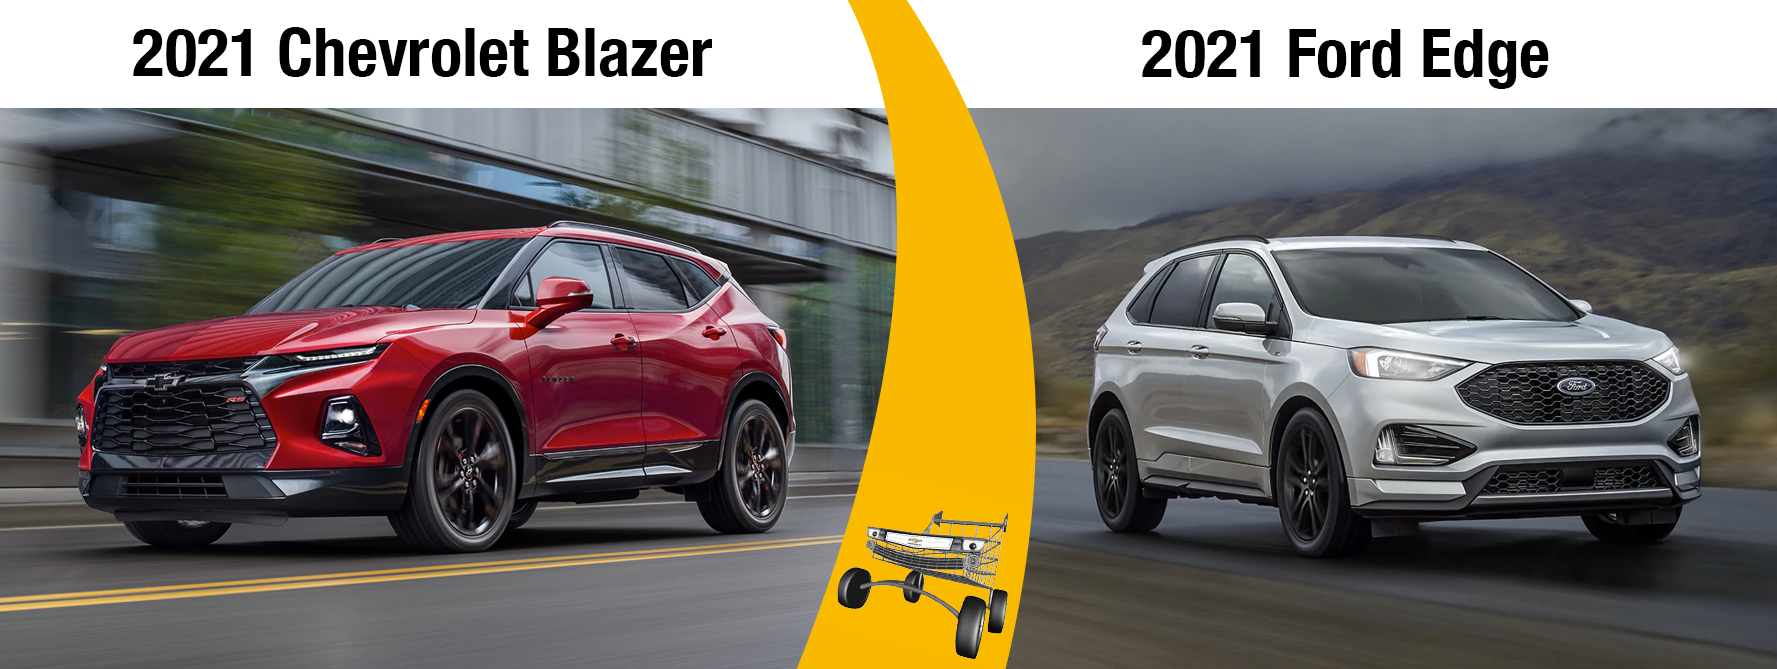 2021 Chevy Blazer vs 2021 Ford Edge